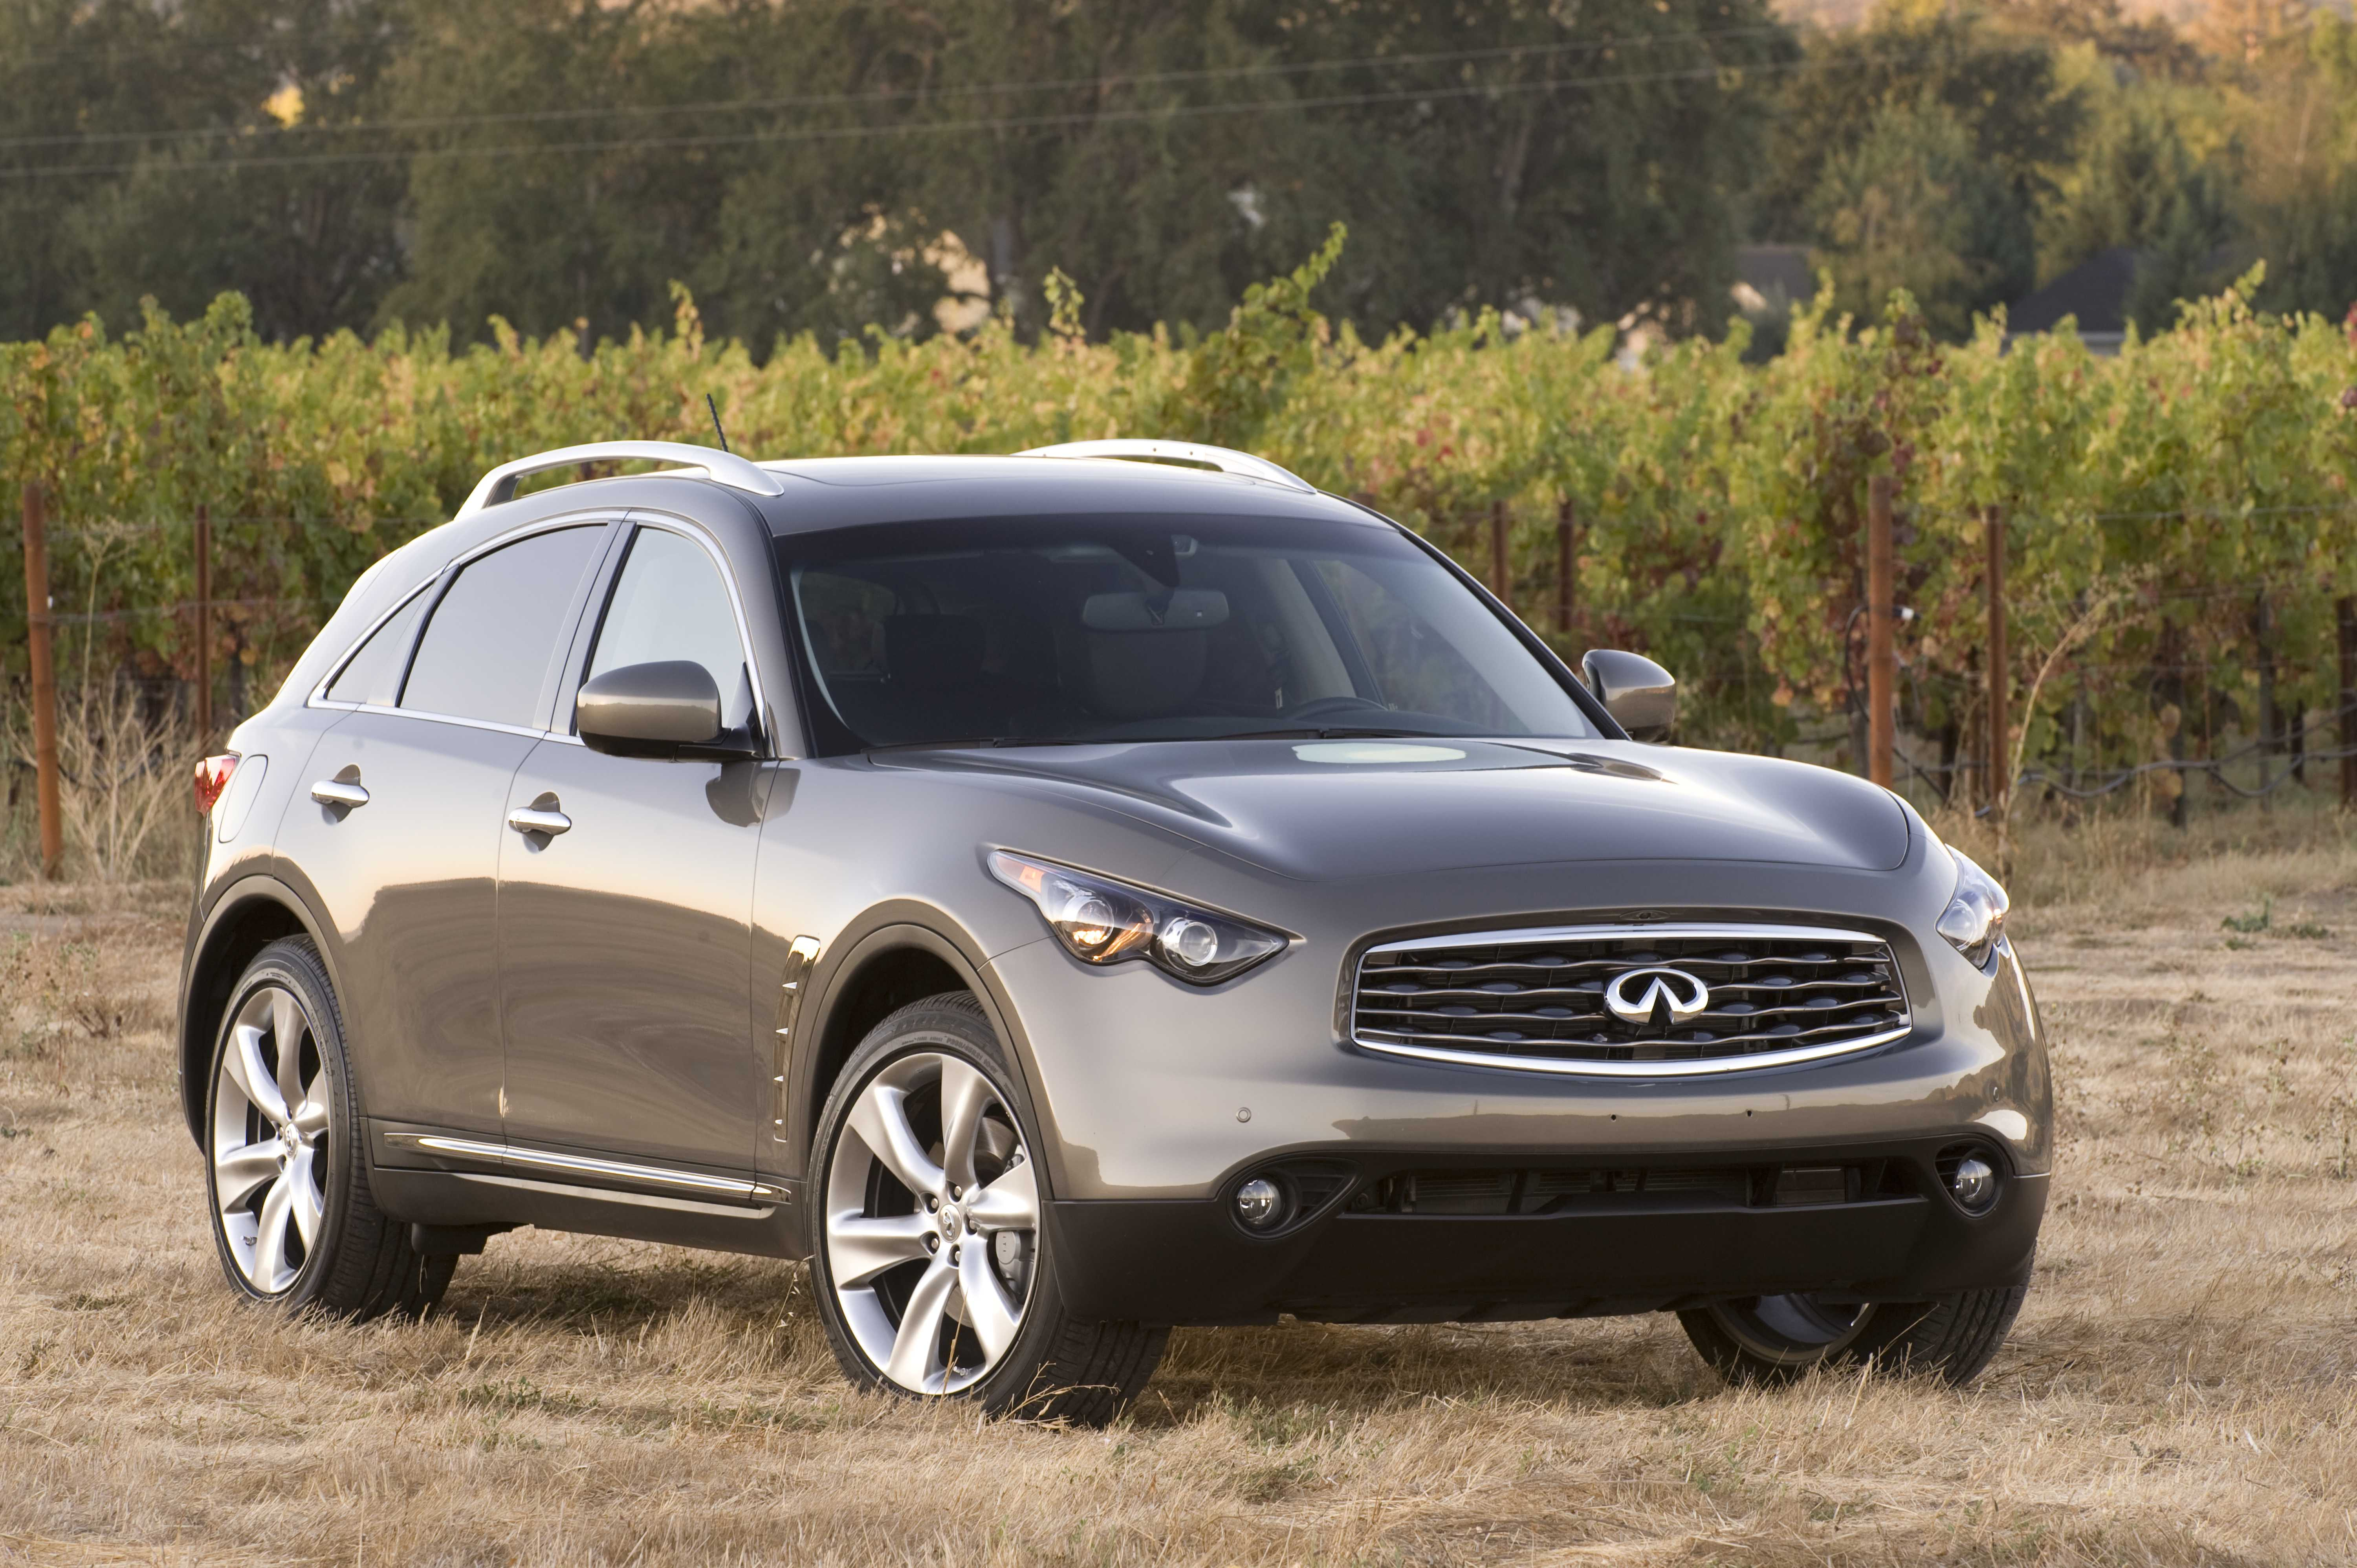 fx sale member infiniti ny irvington original s profile in post another infinity for com cardomain